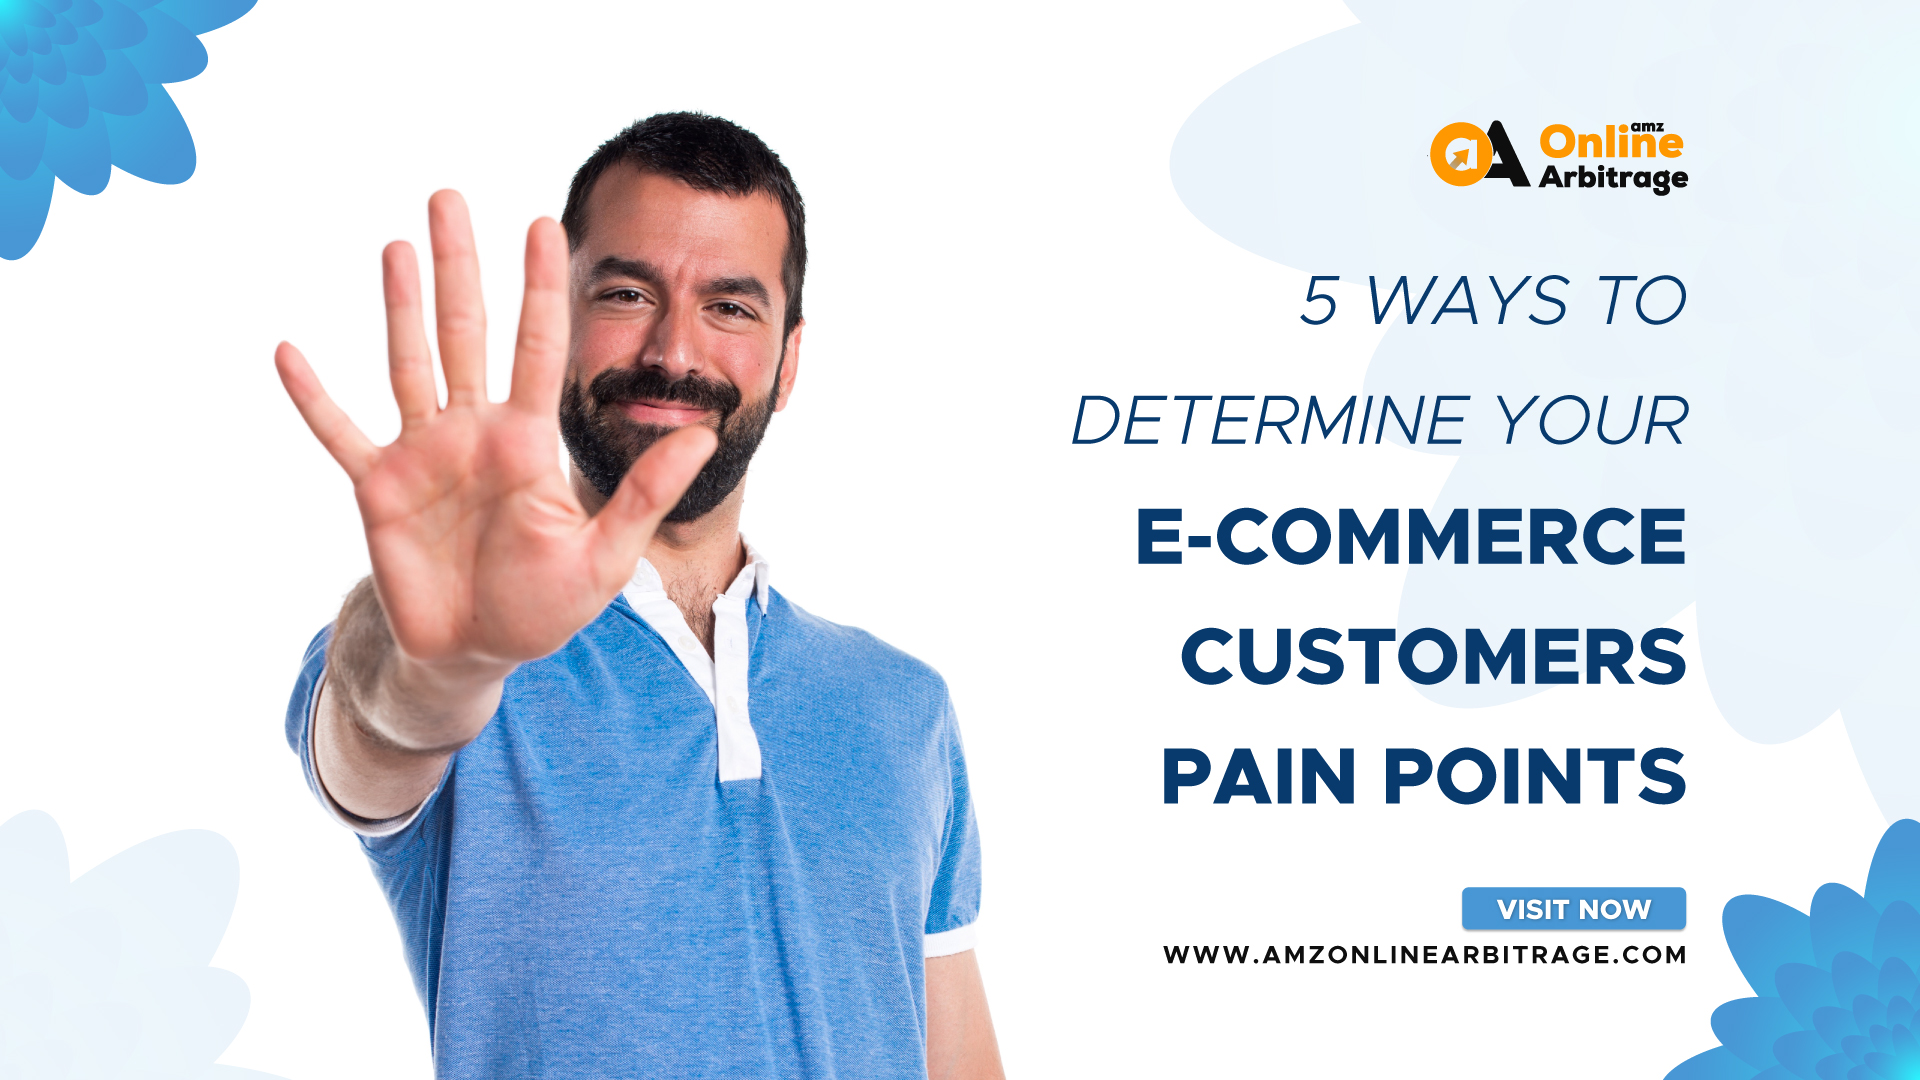 5 WAYS TO DETERMINE YOUR E-COMMERCE CUSTOMERS PAIN POINTS